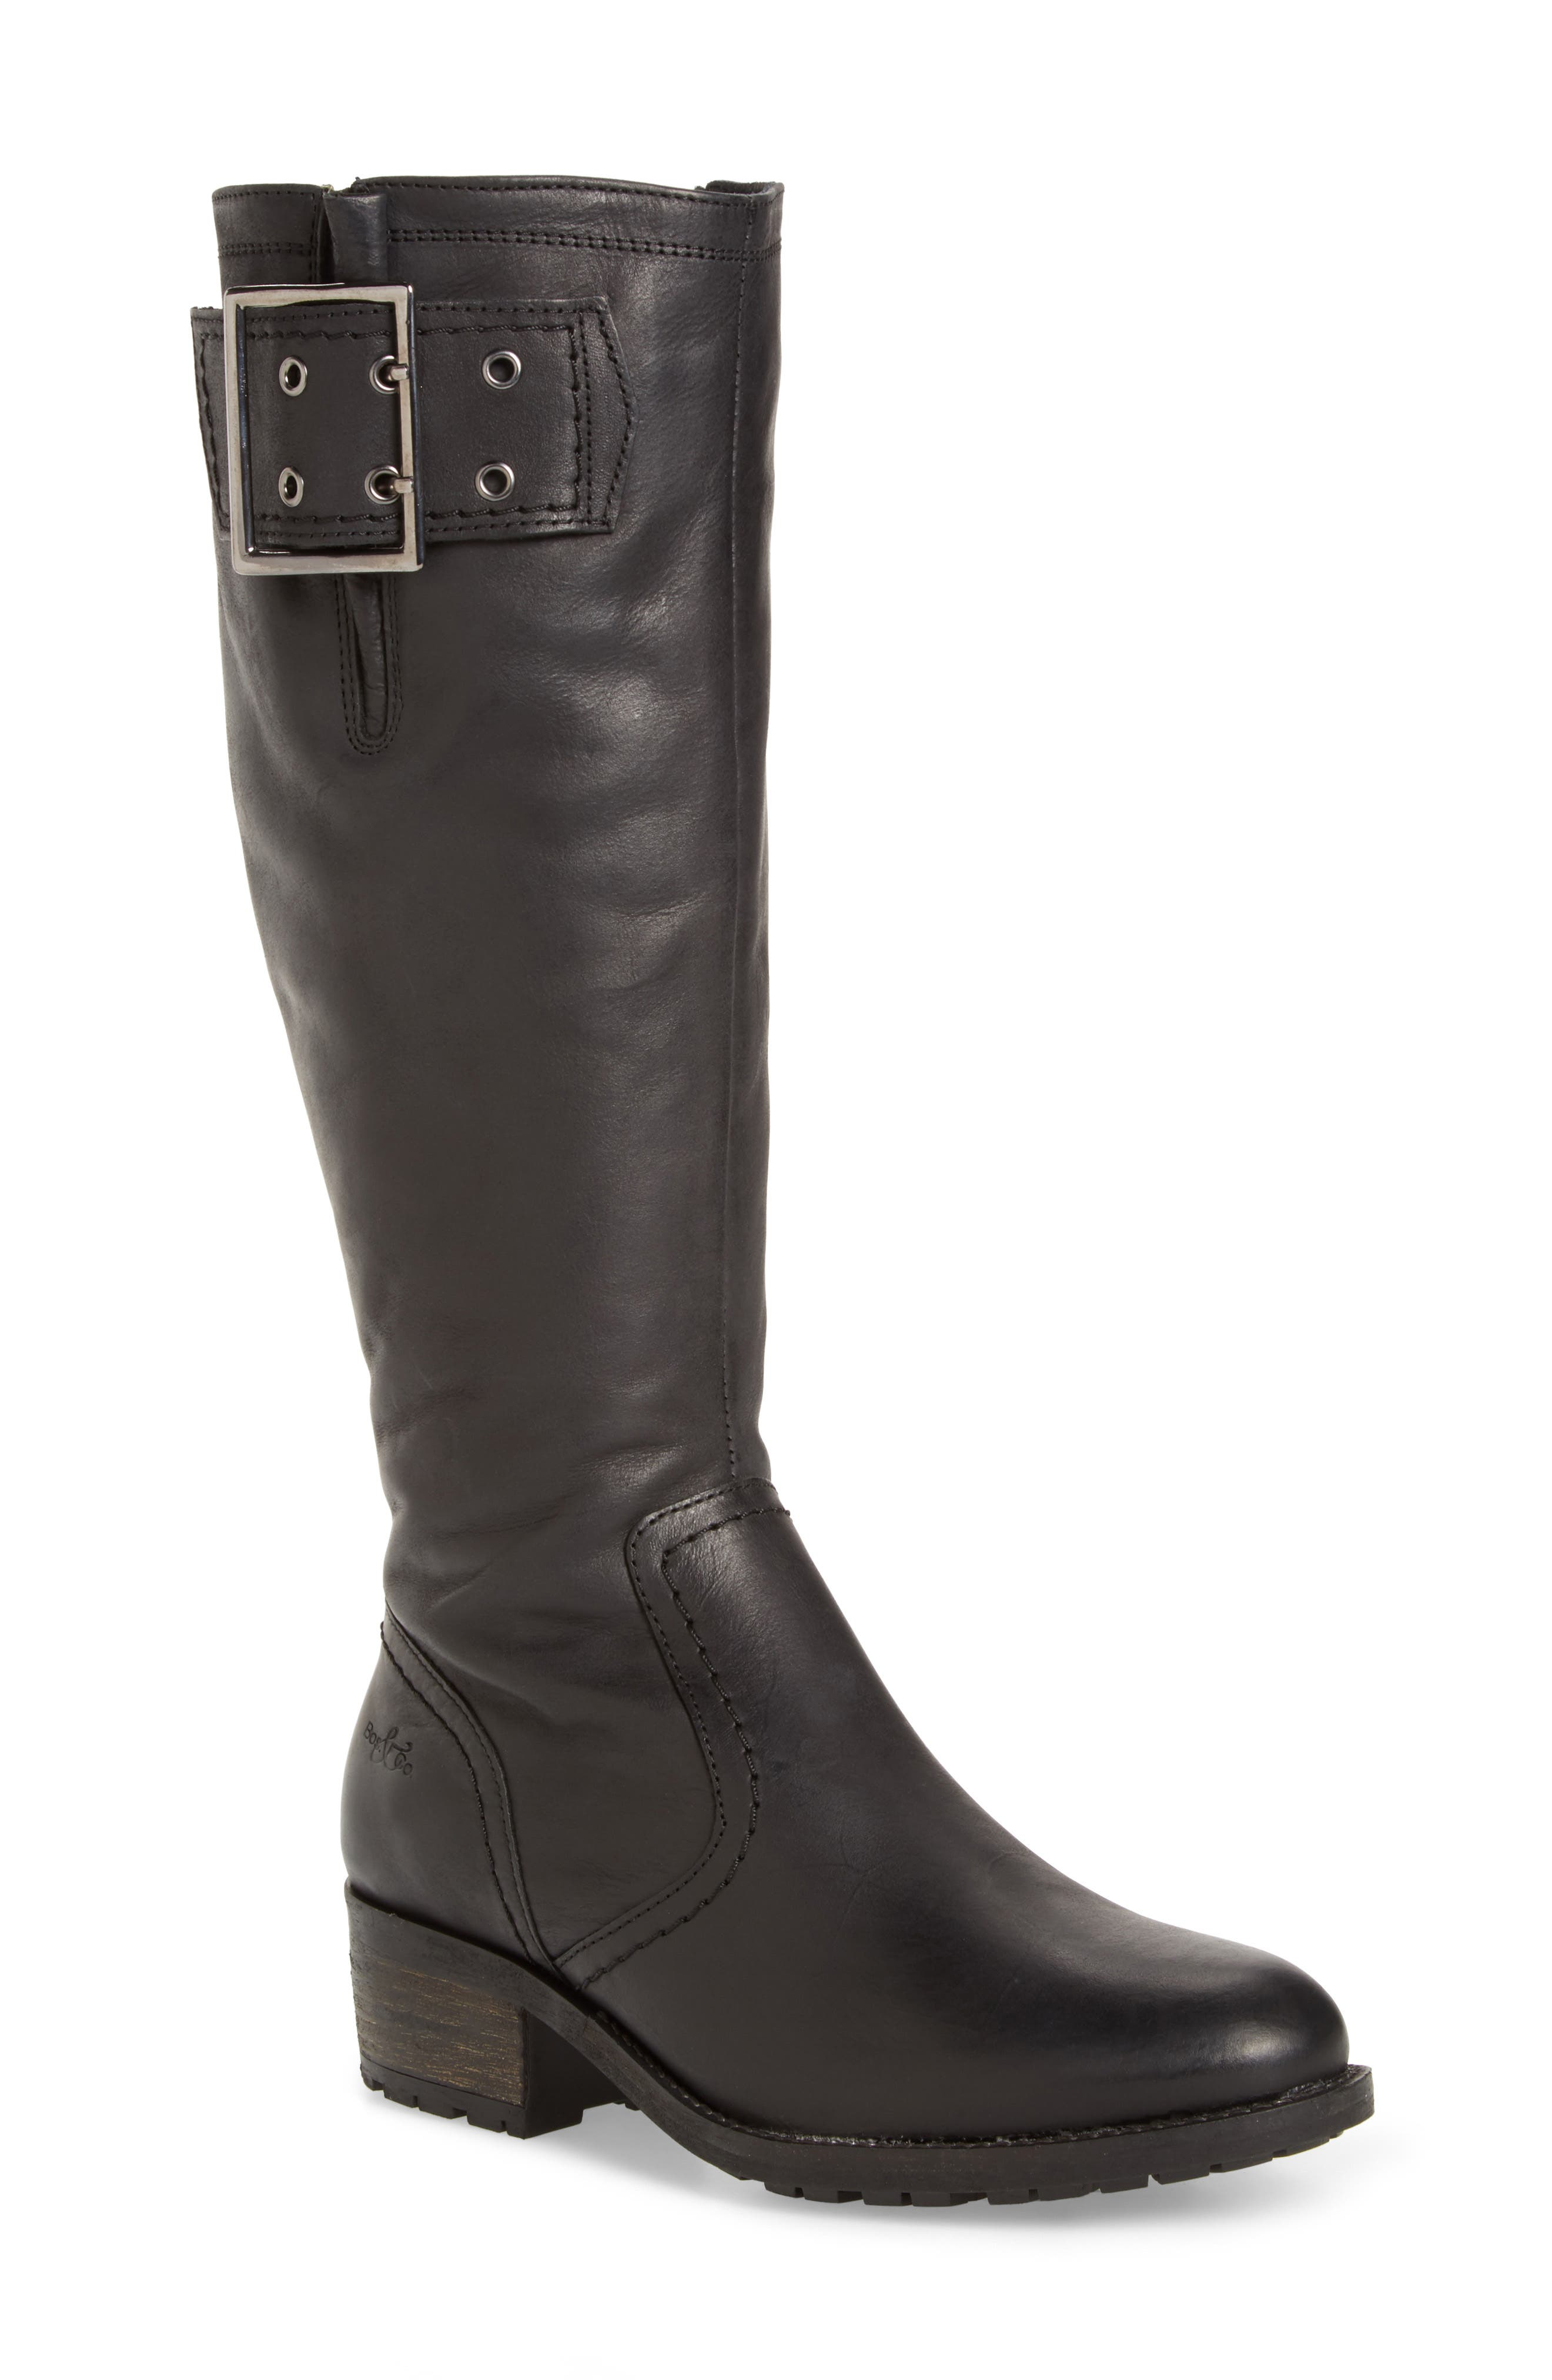 Alternate Image 1 Selected - Bos. & Co. Lawson Tall Waterproof Boot (Women)